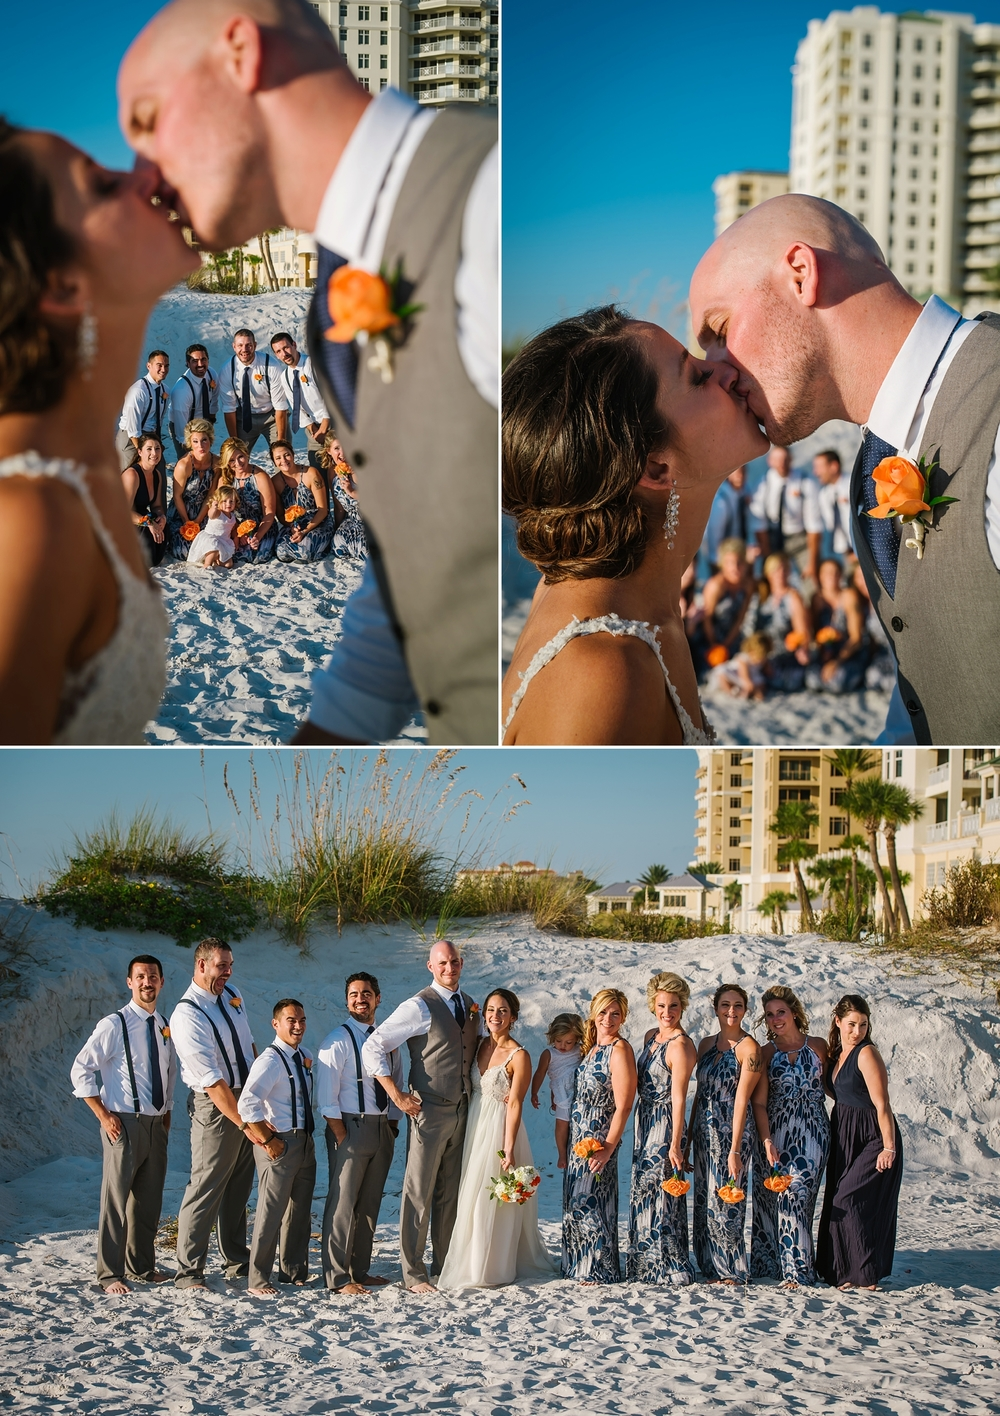 clearwater-beach-wedding-photography-ashlee-hamon_0023.jpg